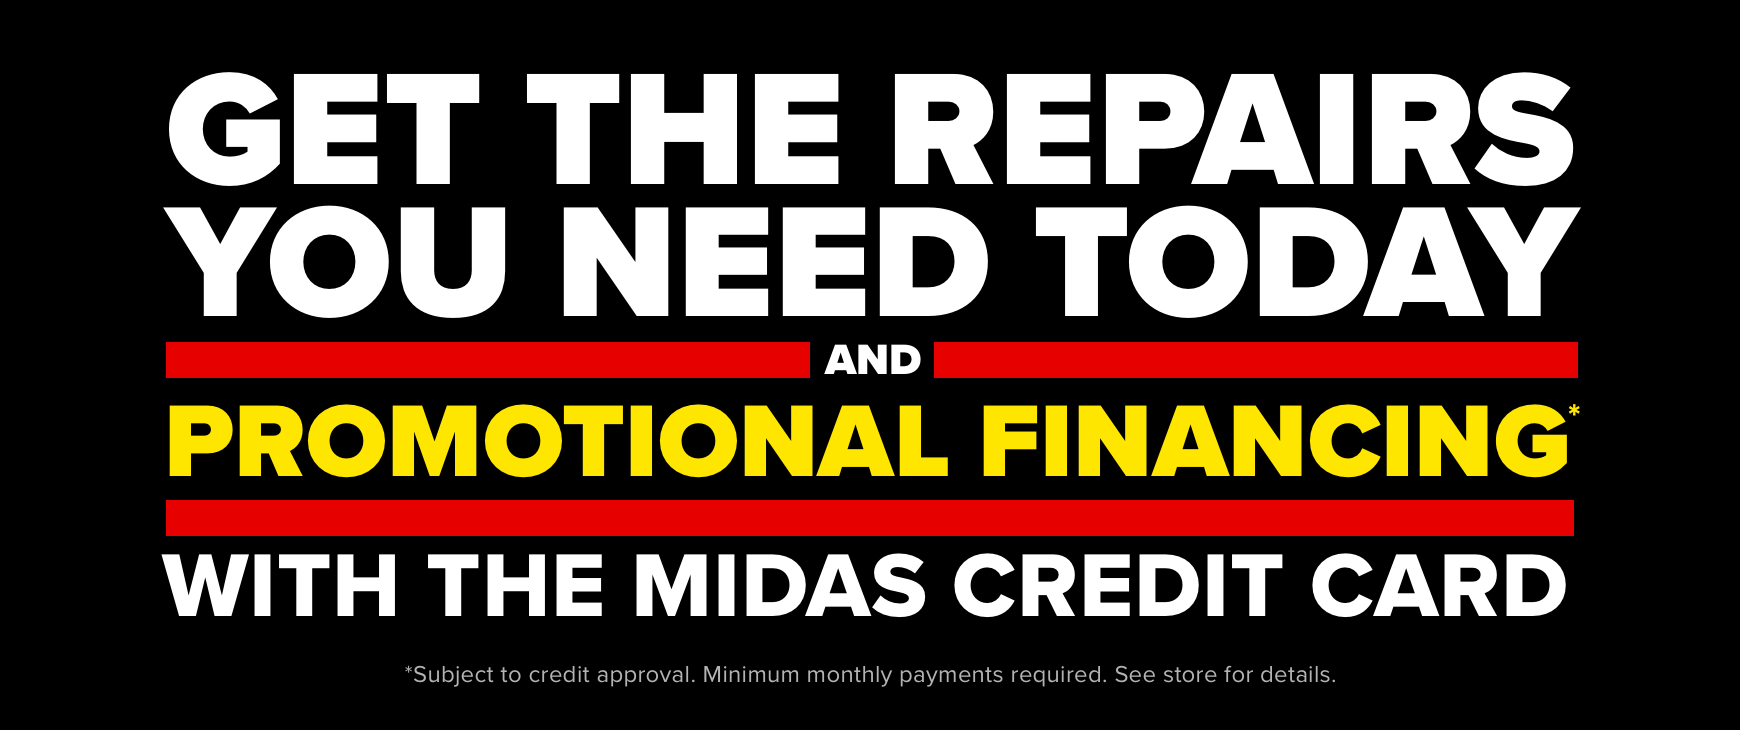 Get the repairs you need today and promotional financing* with the Midas credit card *Subject to credit approval. Minimum monthly payments required. See store for details.